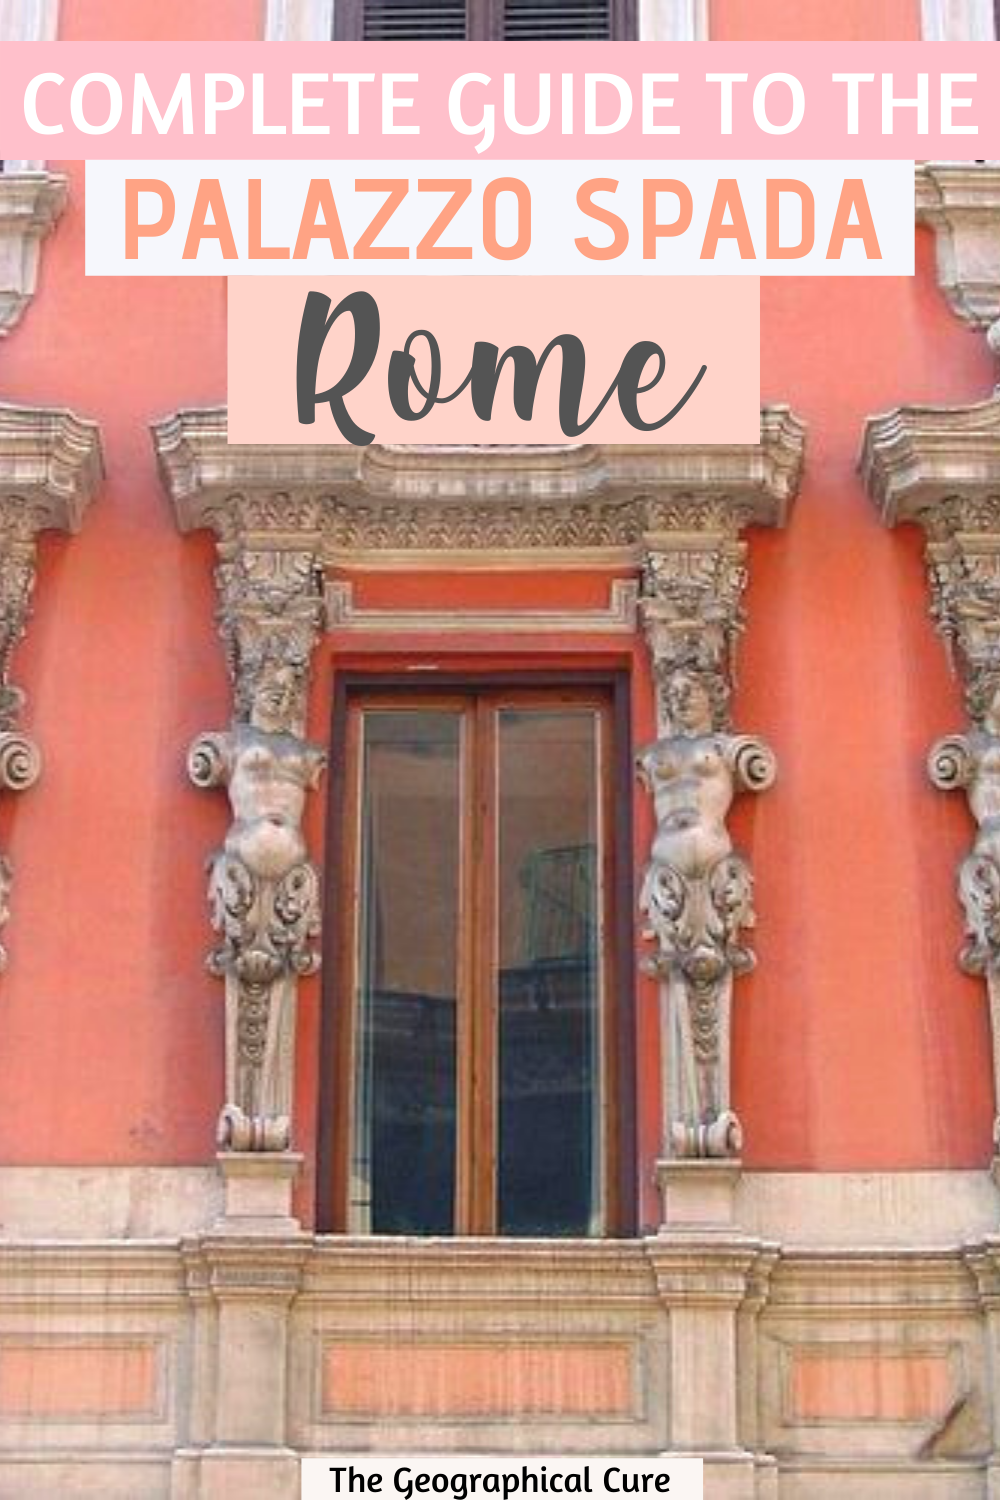 ultimate guide to the Palazzo Spada and Galleria Spada in Rome italy